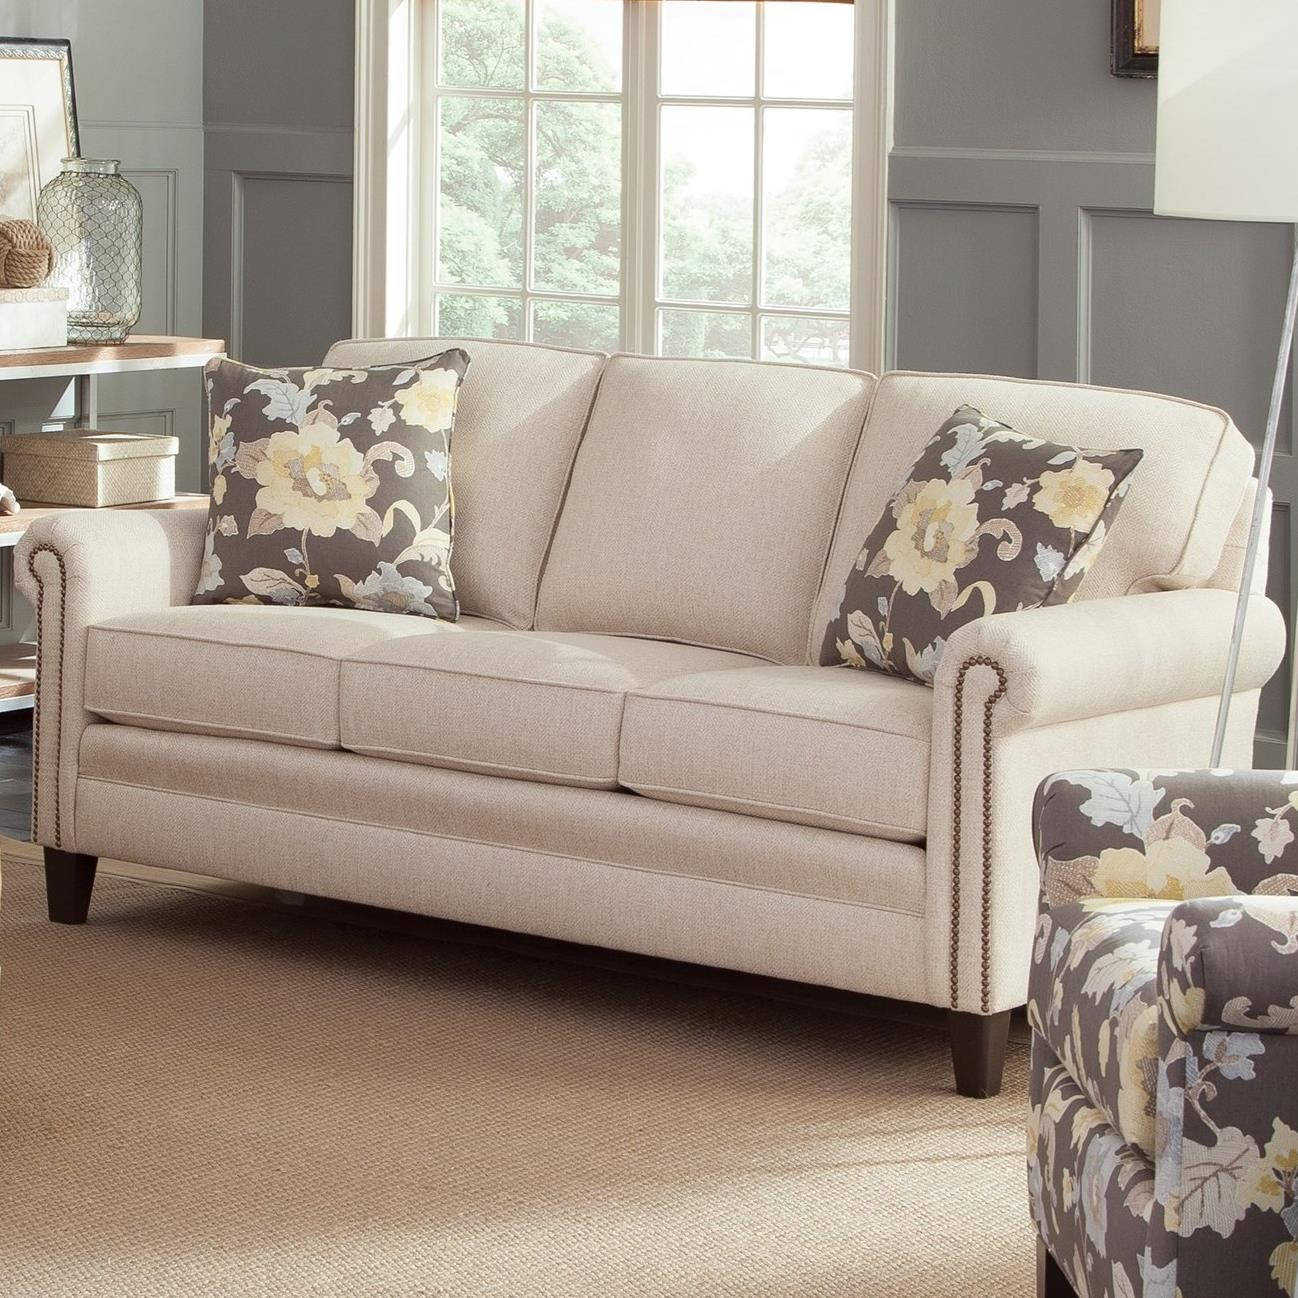 234 Mid-Size Sofa by Smith Brothers at Sprintz Furniture